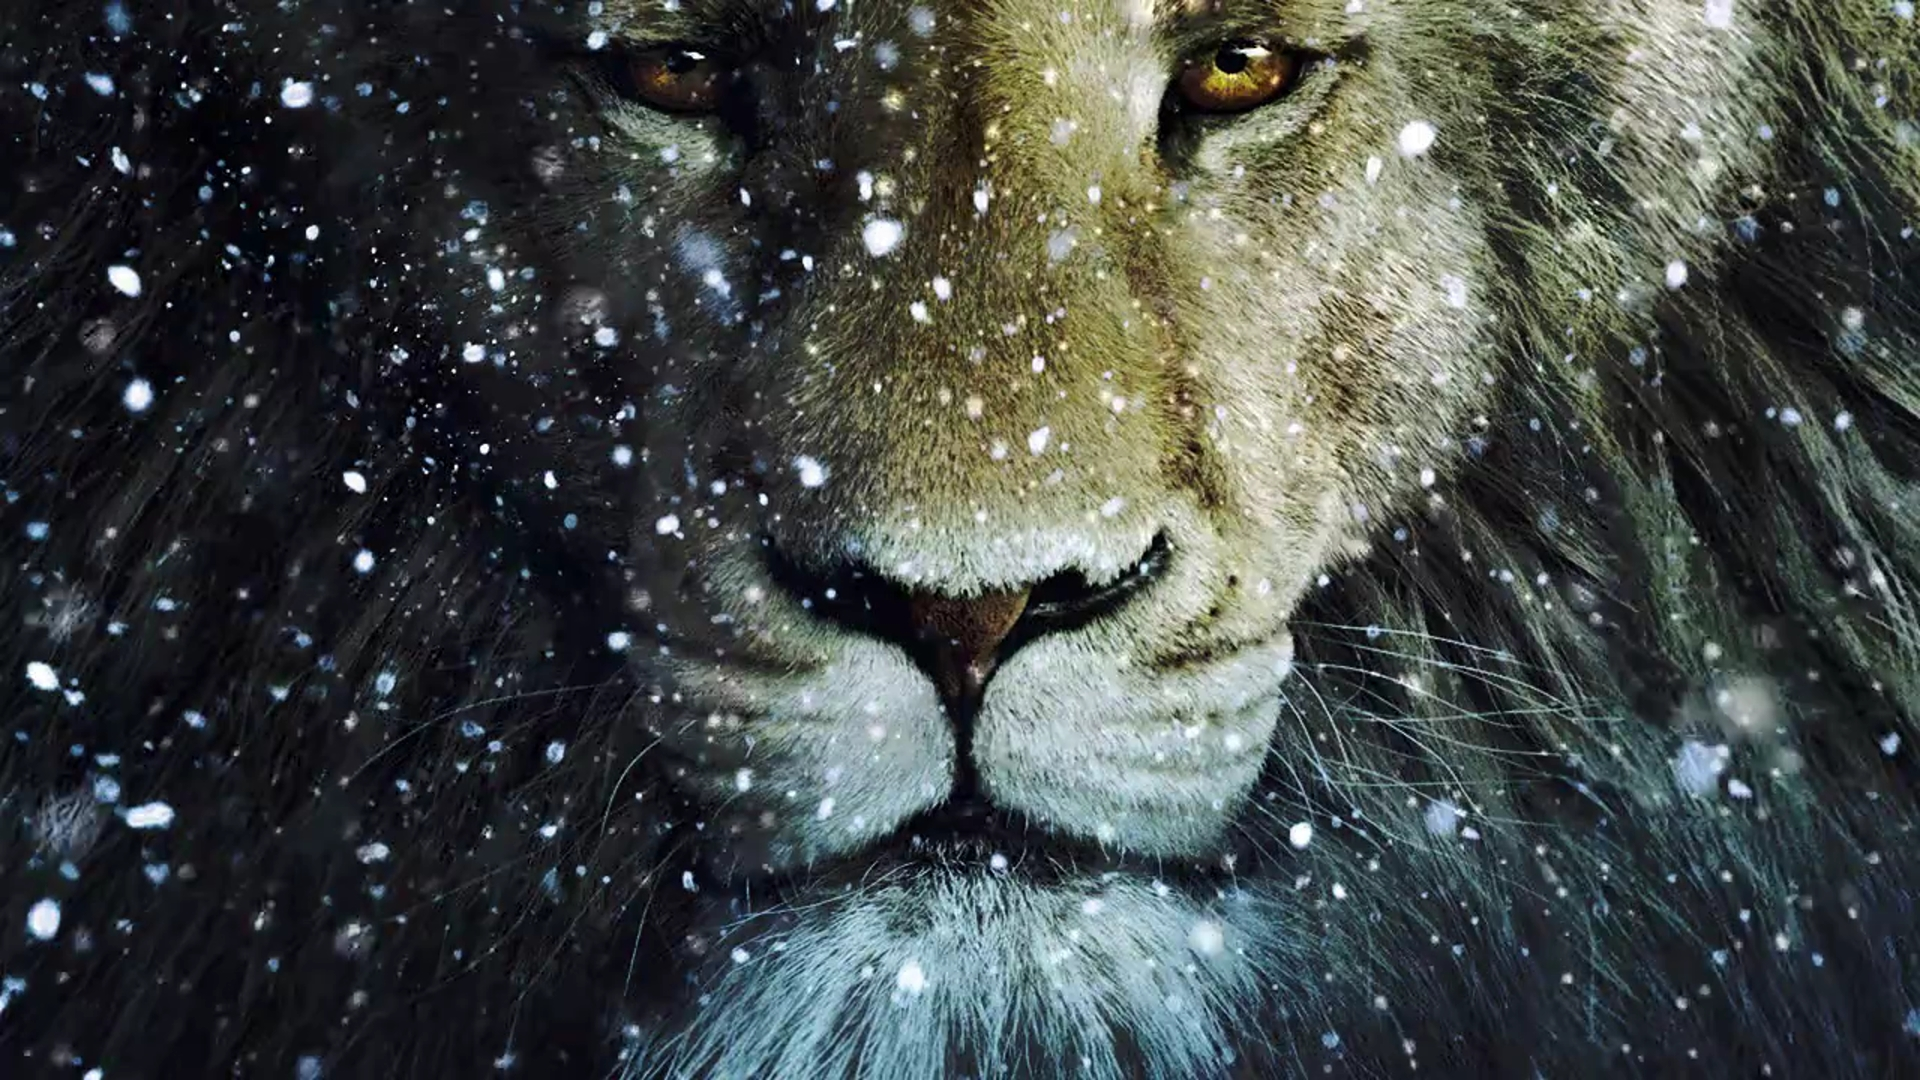 Aslan images aslan the king of narnia HD wallpaper and background ...